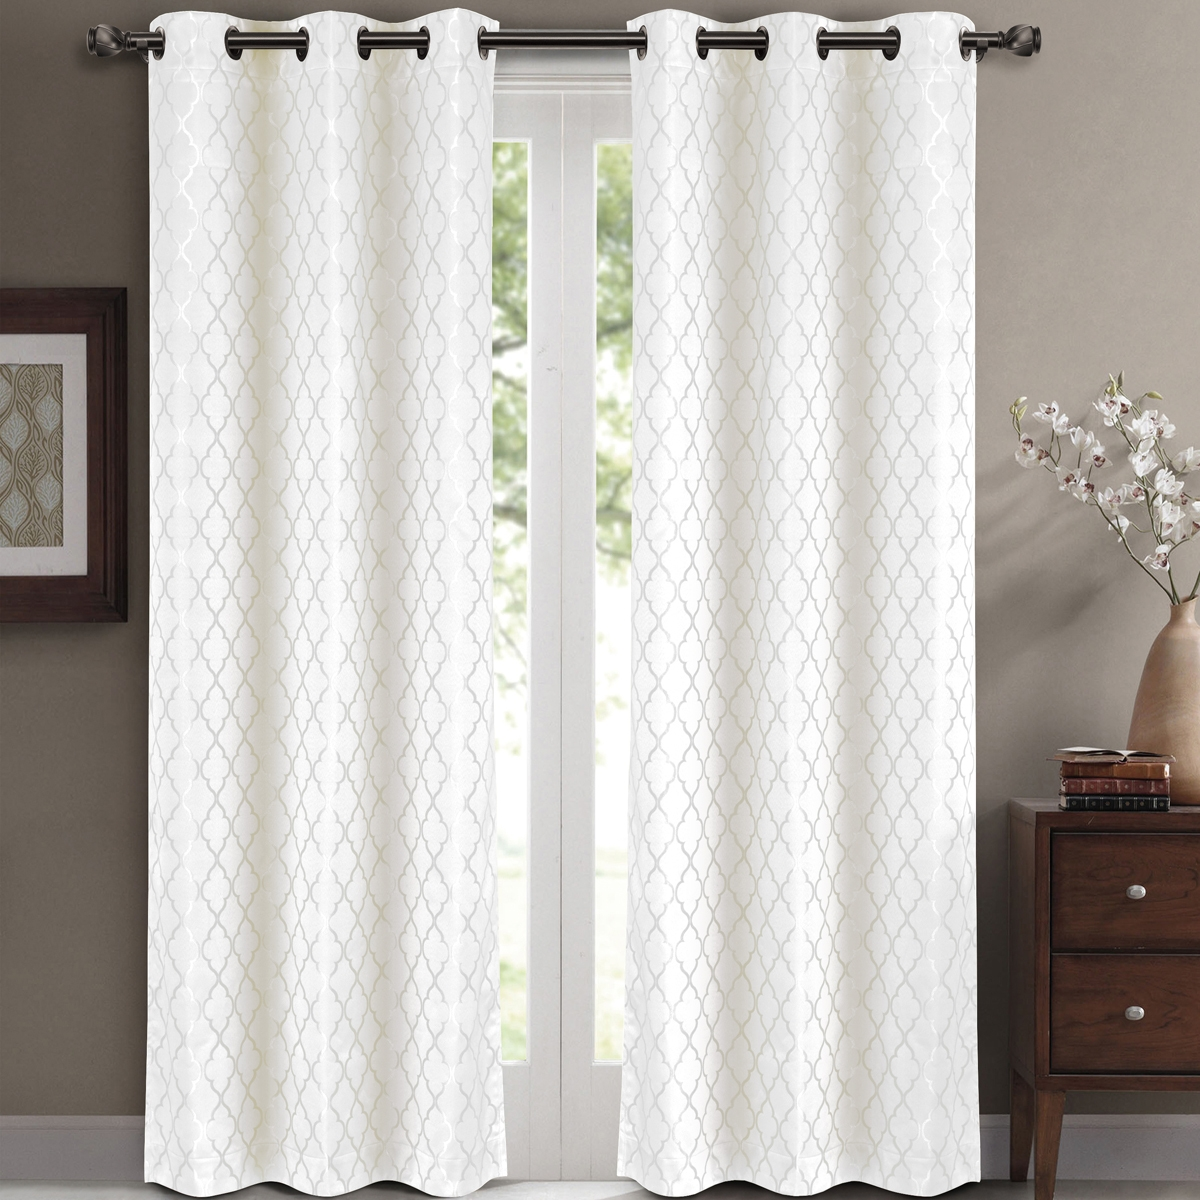 15 photos thermal insulation curtains curtain ideas for Thermal windows reviews